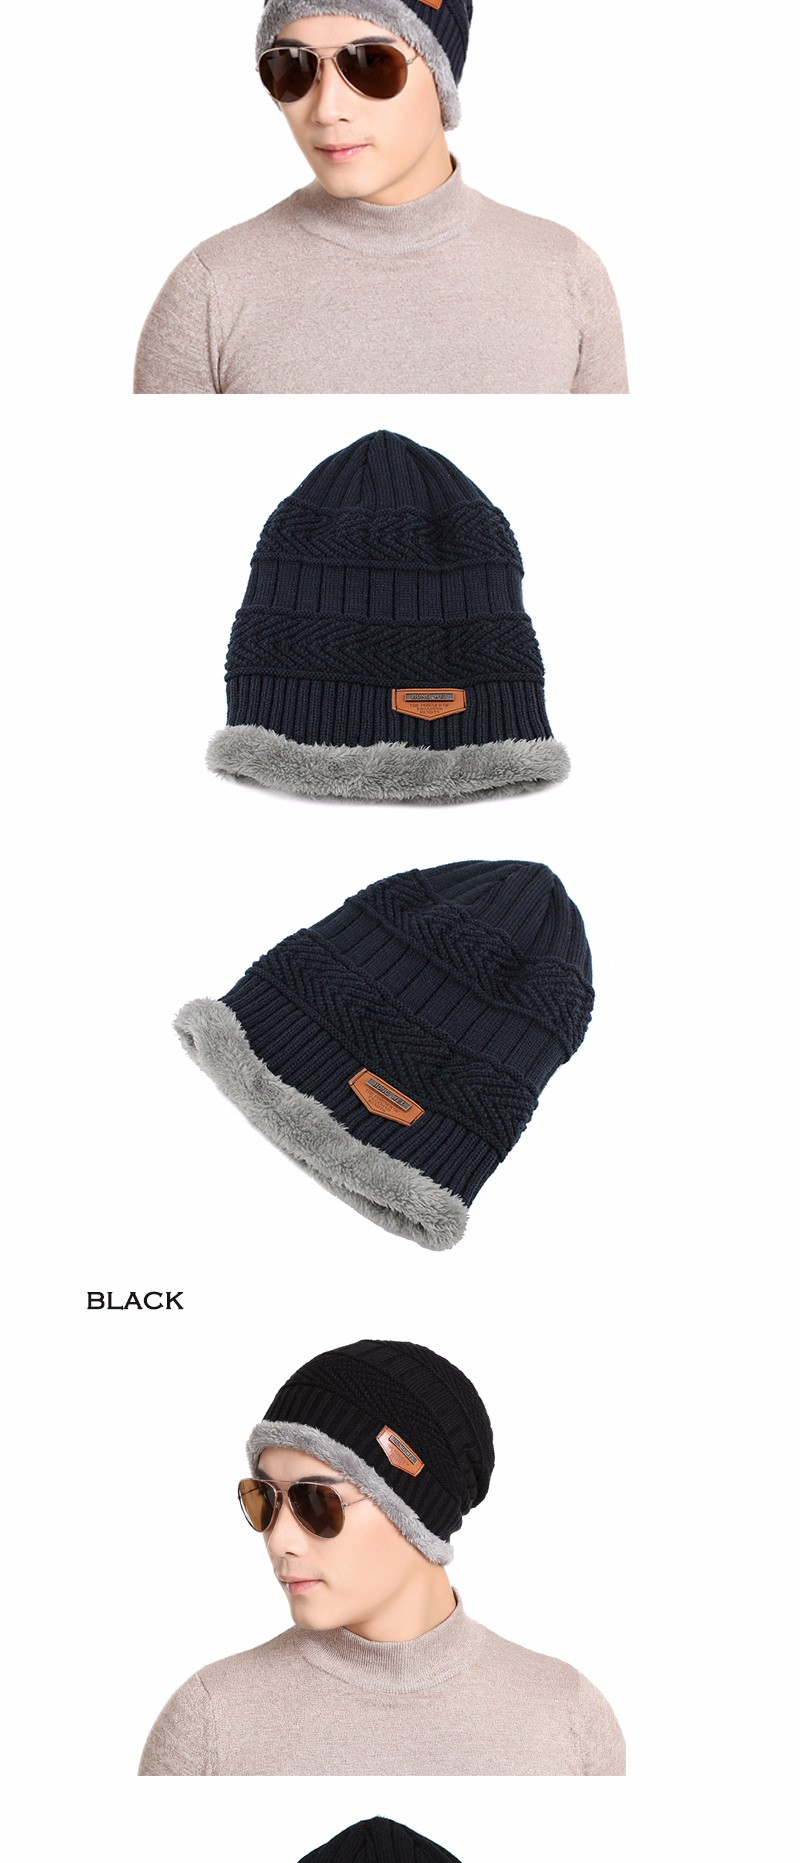 FETSBUY Pure Color Winter Skullies Beanies Hat Knit Winter Hat For Man Warm Hat Velvet Cap Bonnet Toucas Inverno Knitted Hats 54